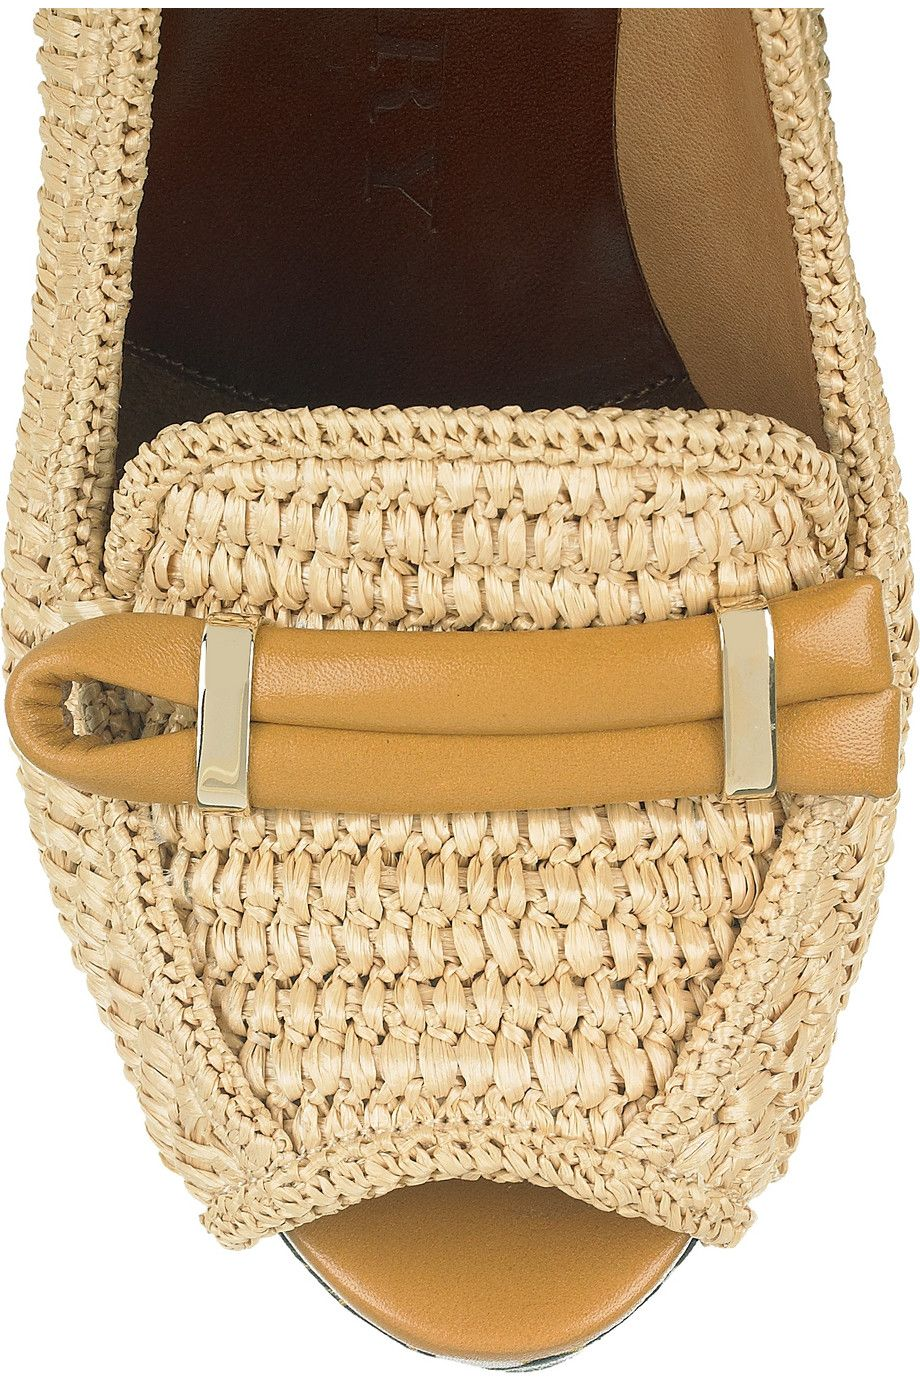 Burberry Prorsum|Woven raffia and printed wedge pumps